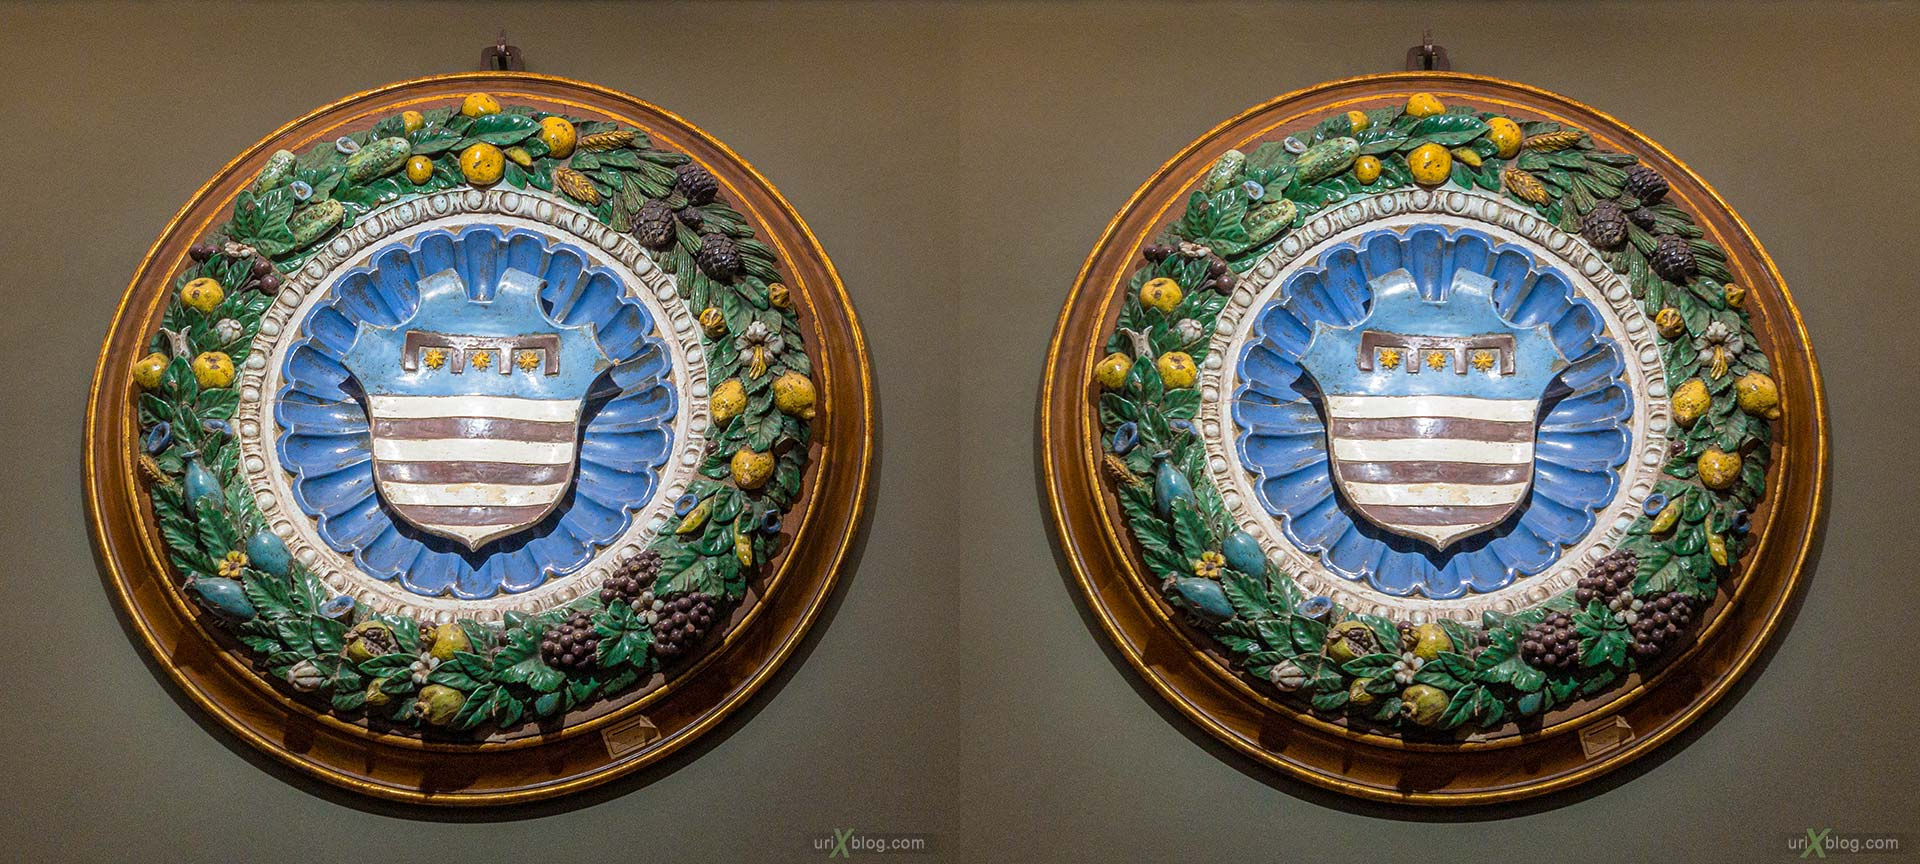 coat of arms, crest, glazed terracotta, tondo, garland, Uffizi Gallery, Contini Bonacossi Collection, Benedetto Buglioni, Florence, Firenze, Italy, 3D, stereo pair, cross-eyed, crossview, cross view stereo pair, stereoscopic